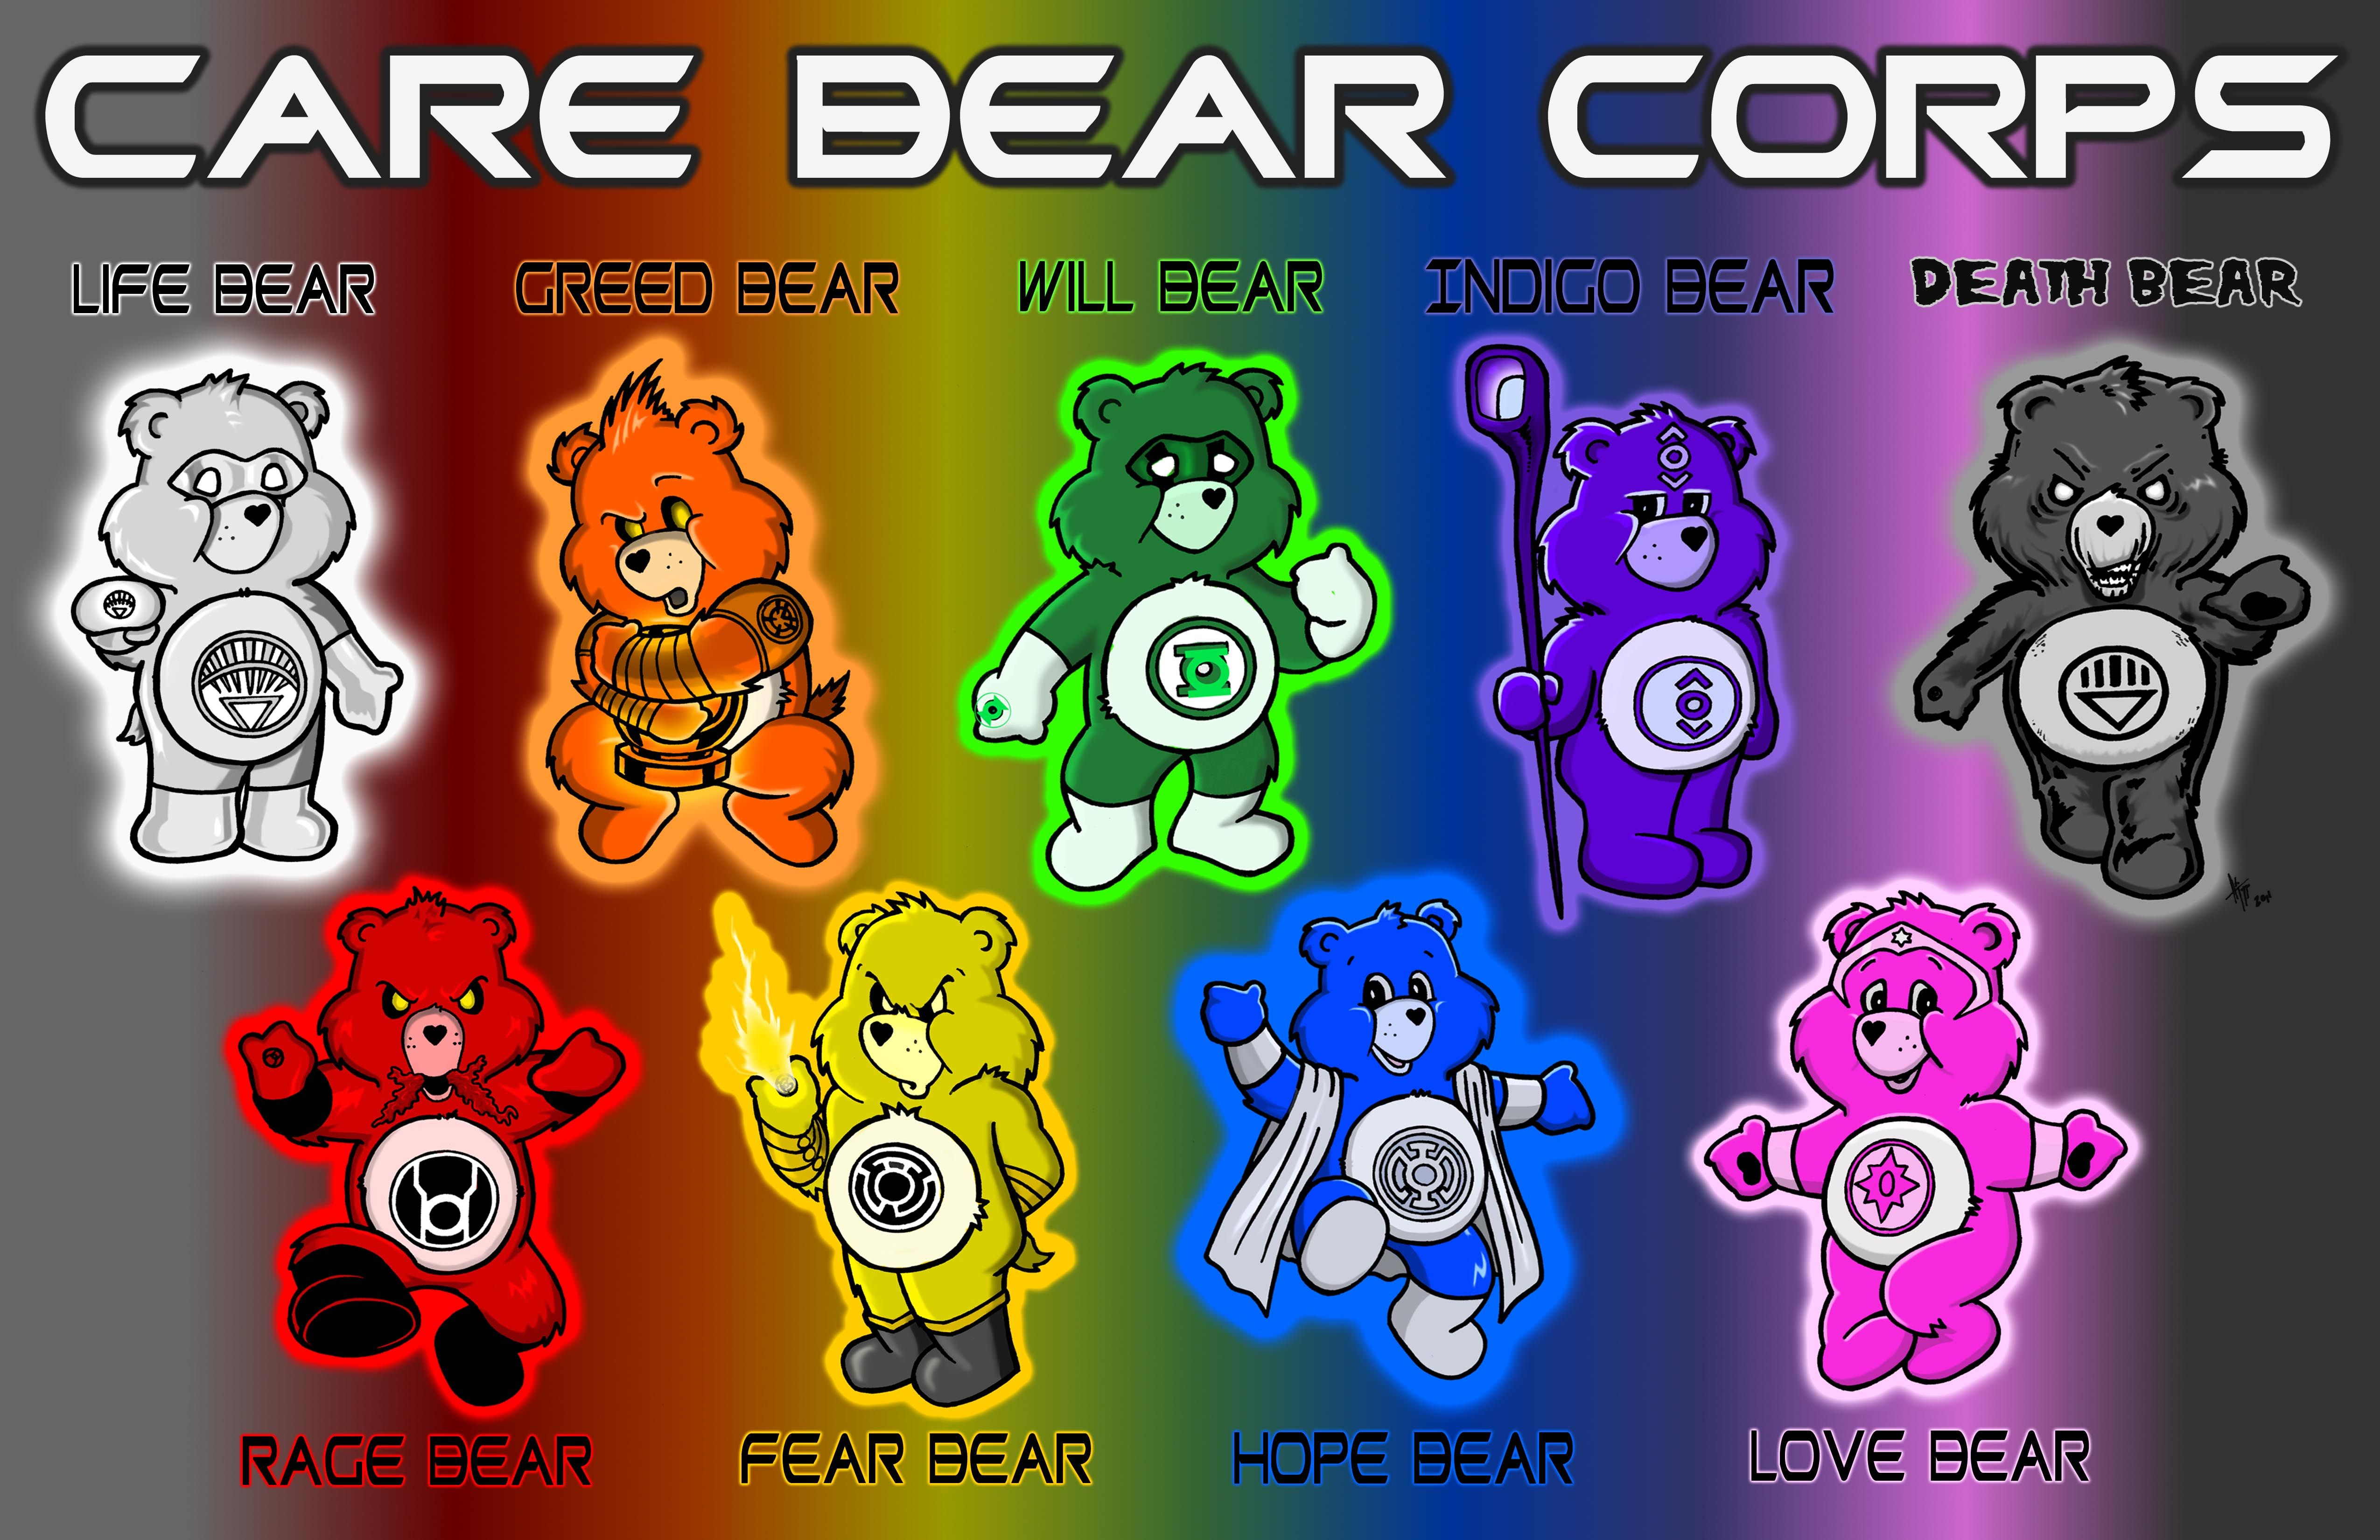 these bears have gone all emotional inspired by the